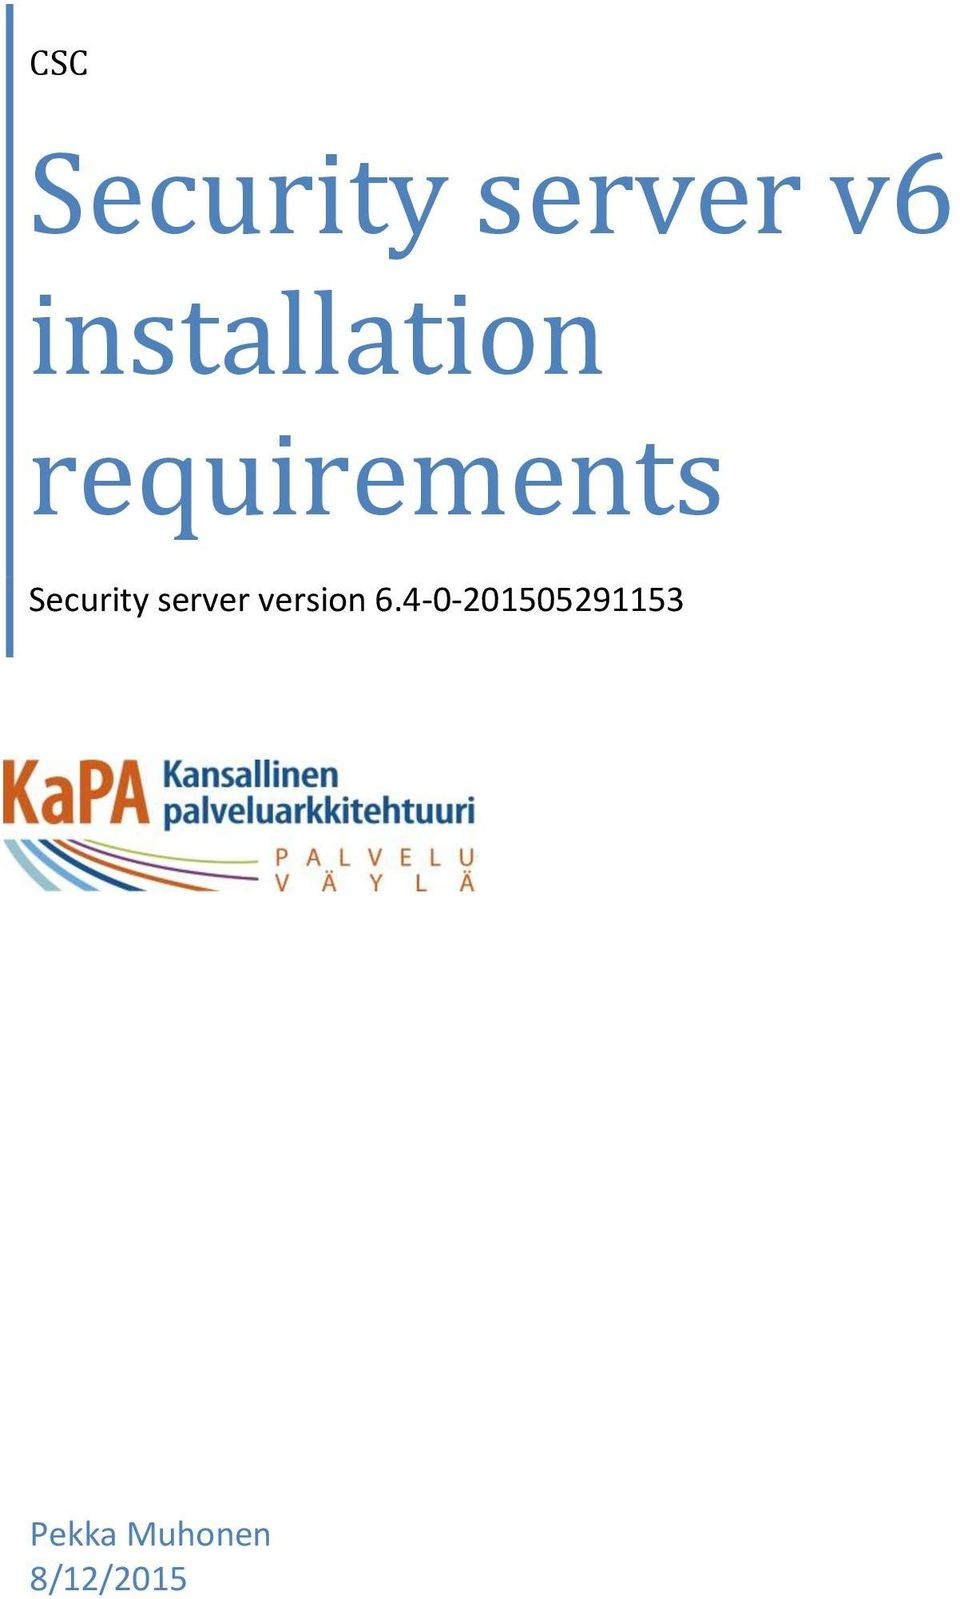 Security server version 6.